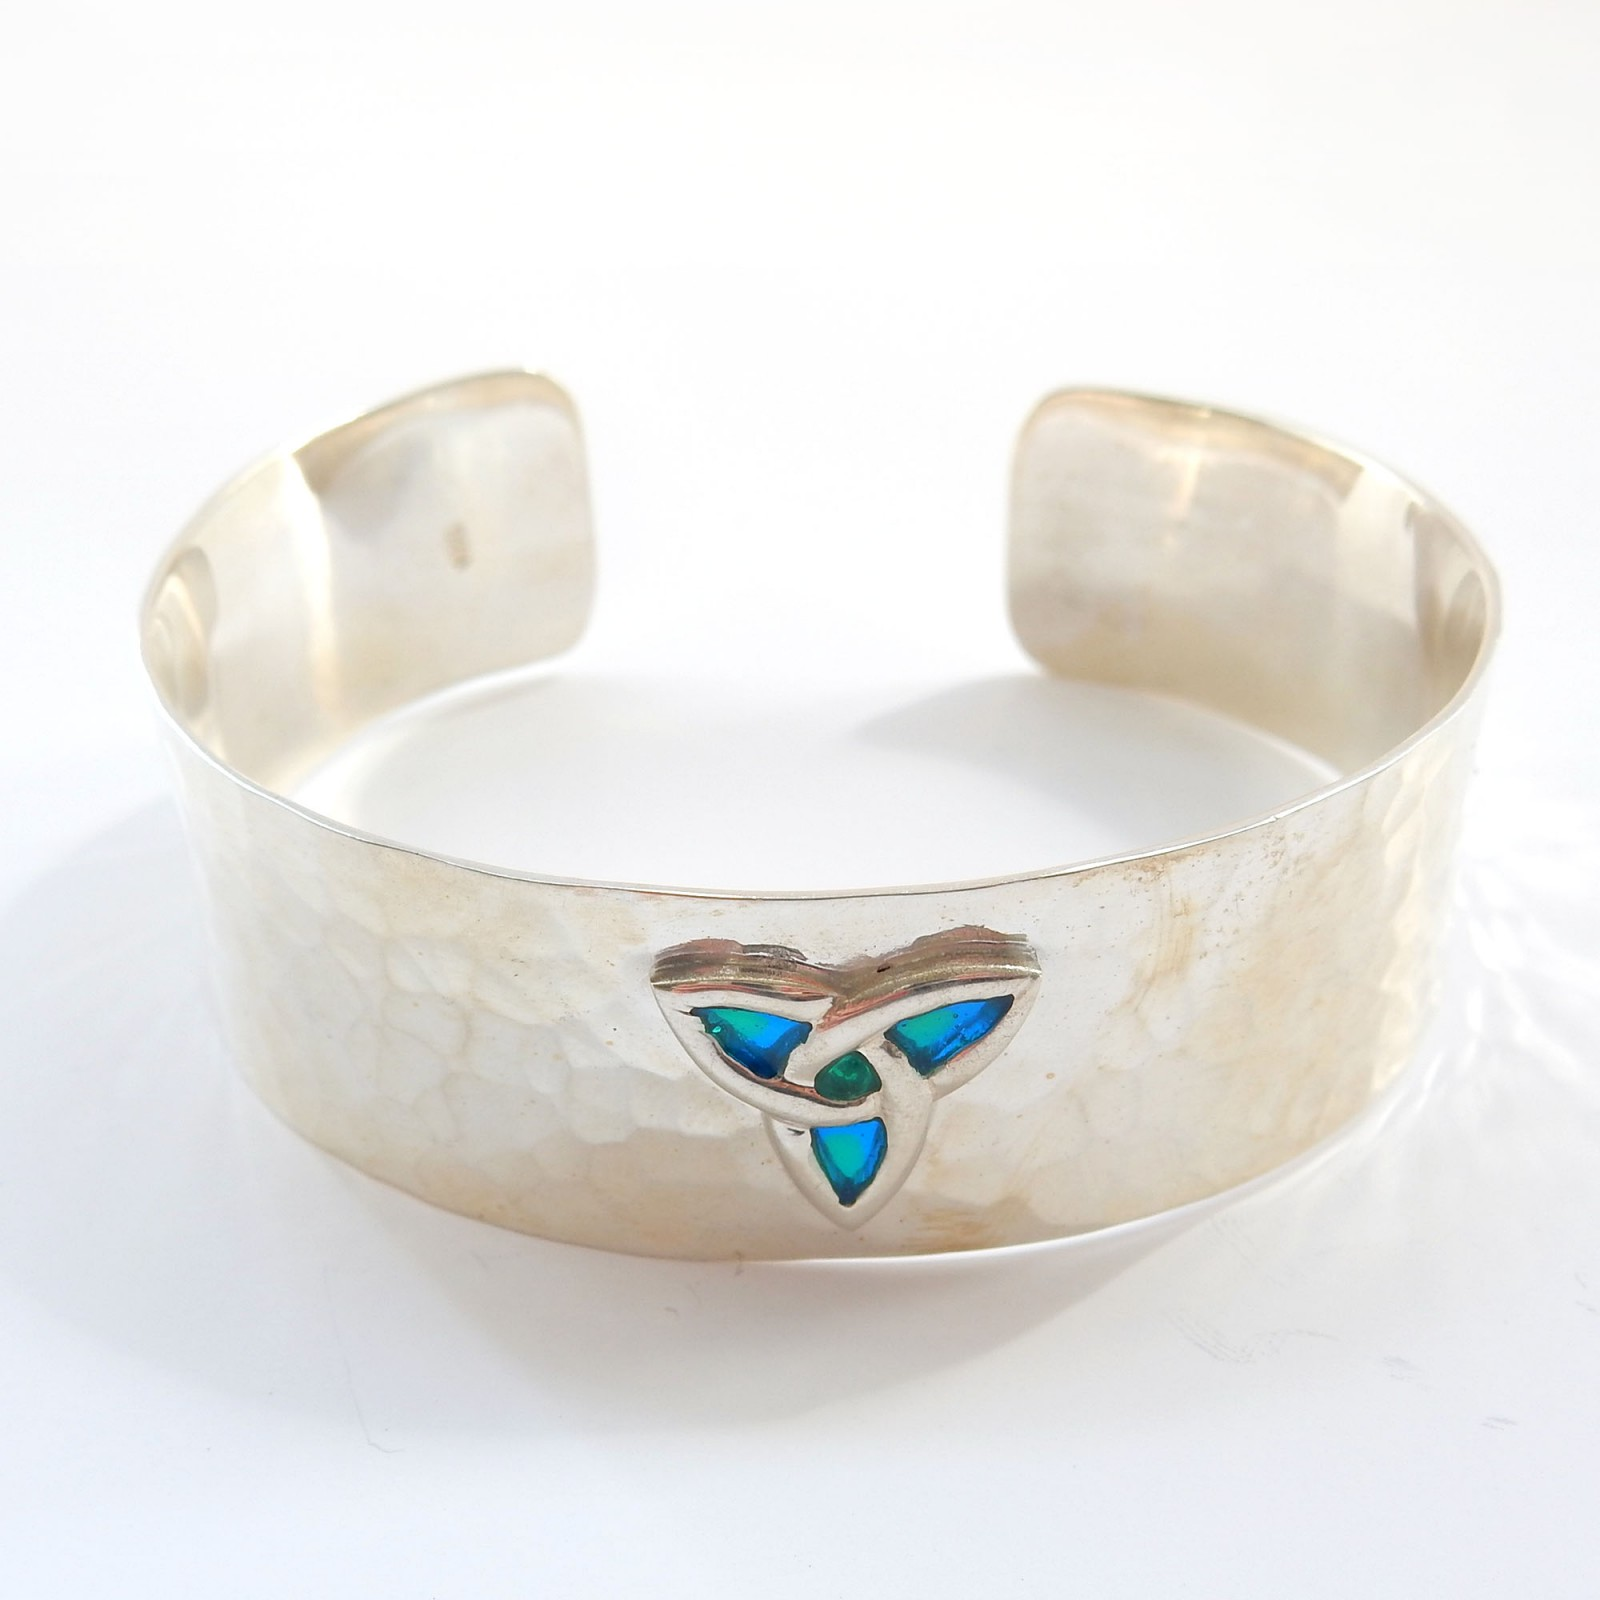 Photo of Arts Crafts Hammerware Celtic Enamel Cuff Bracelet Bangle Sterling Silver